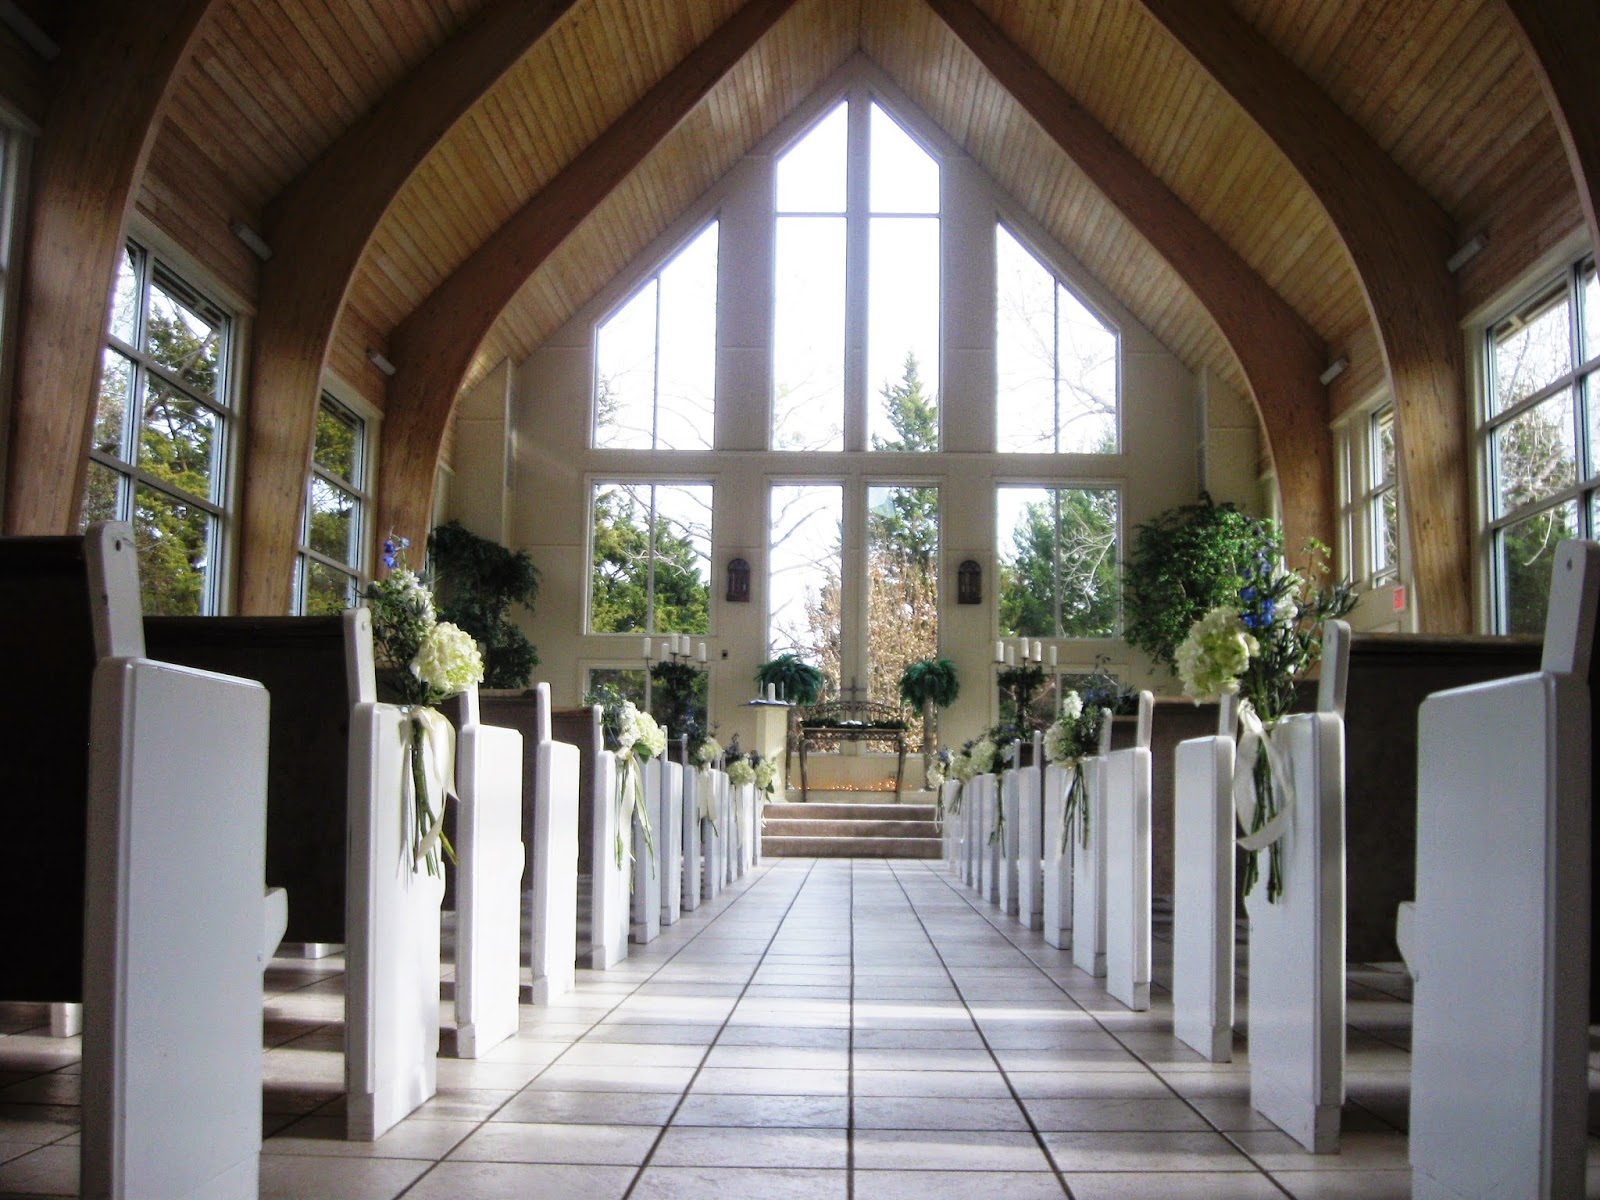 Walnut Creek Chapel: Walnut Creek Wedding Chapel Received 2014